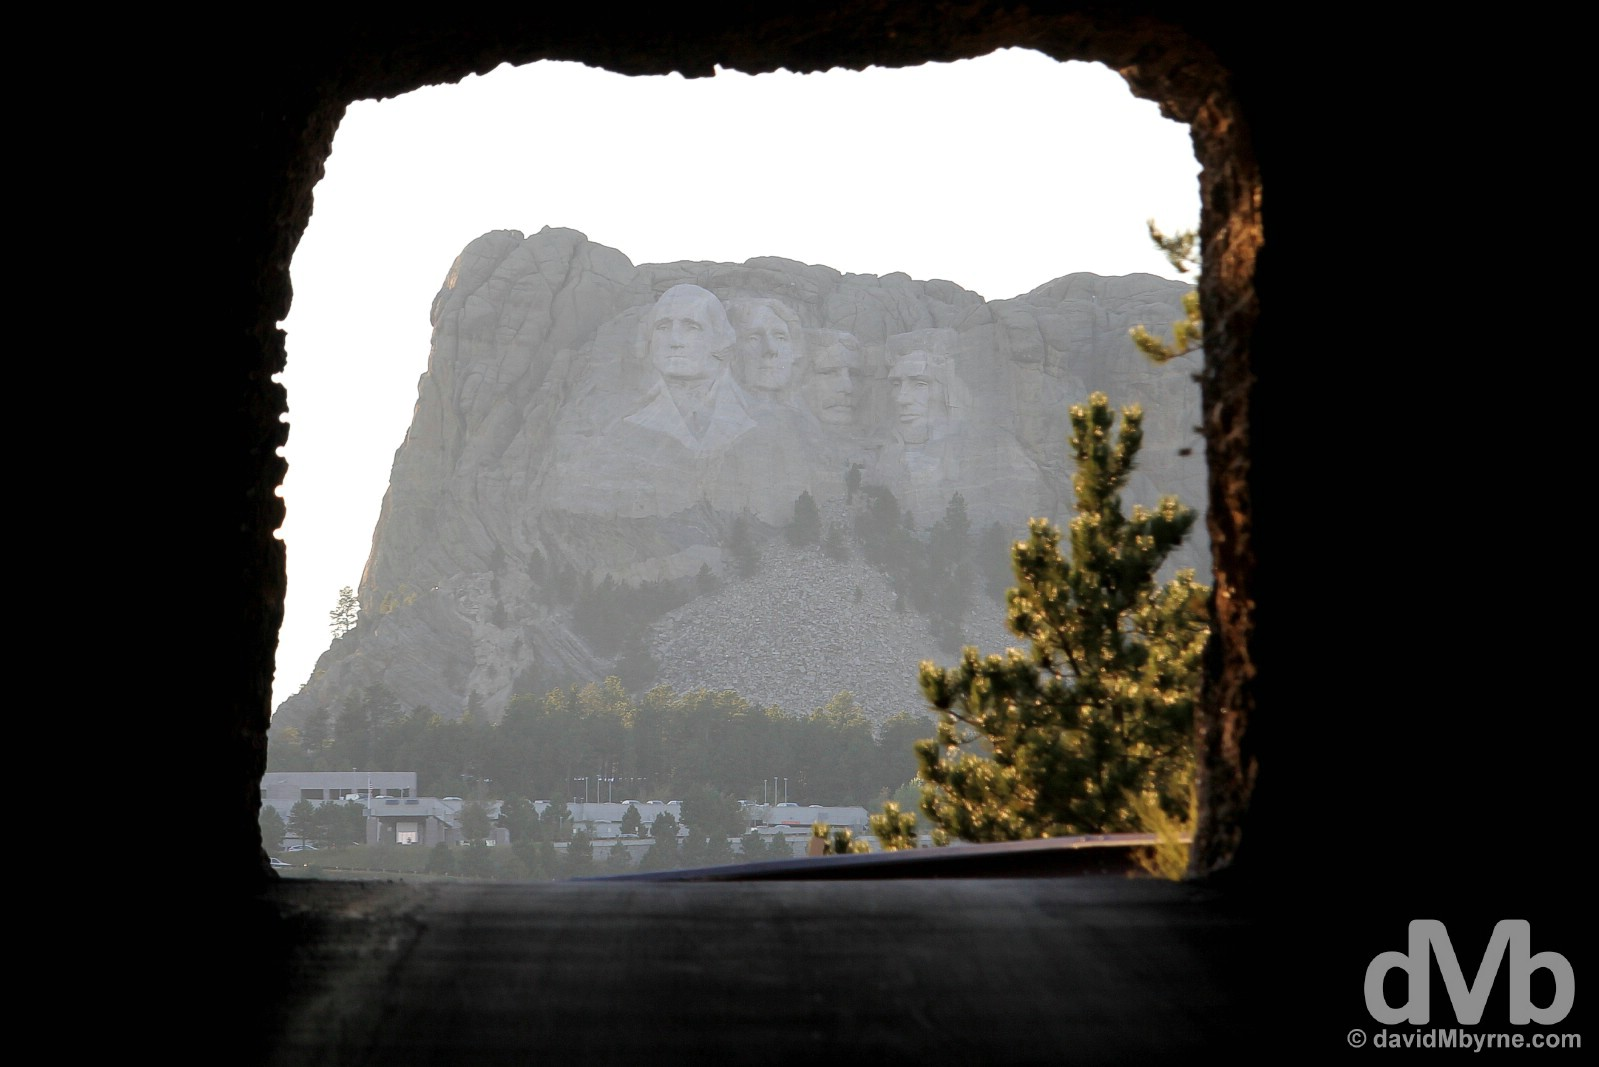 Mount Rushmore National Monument as seen through the Doane Robinson Tunnel of the Needles Highway of Custer State Park, Black Hills, South Dakota. September 2, 2016.